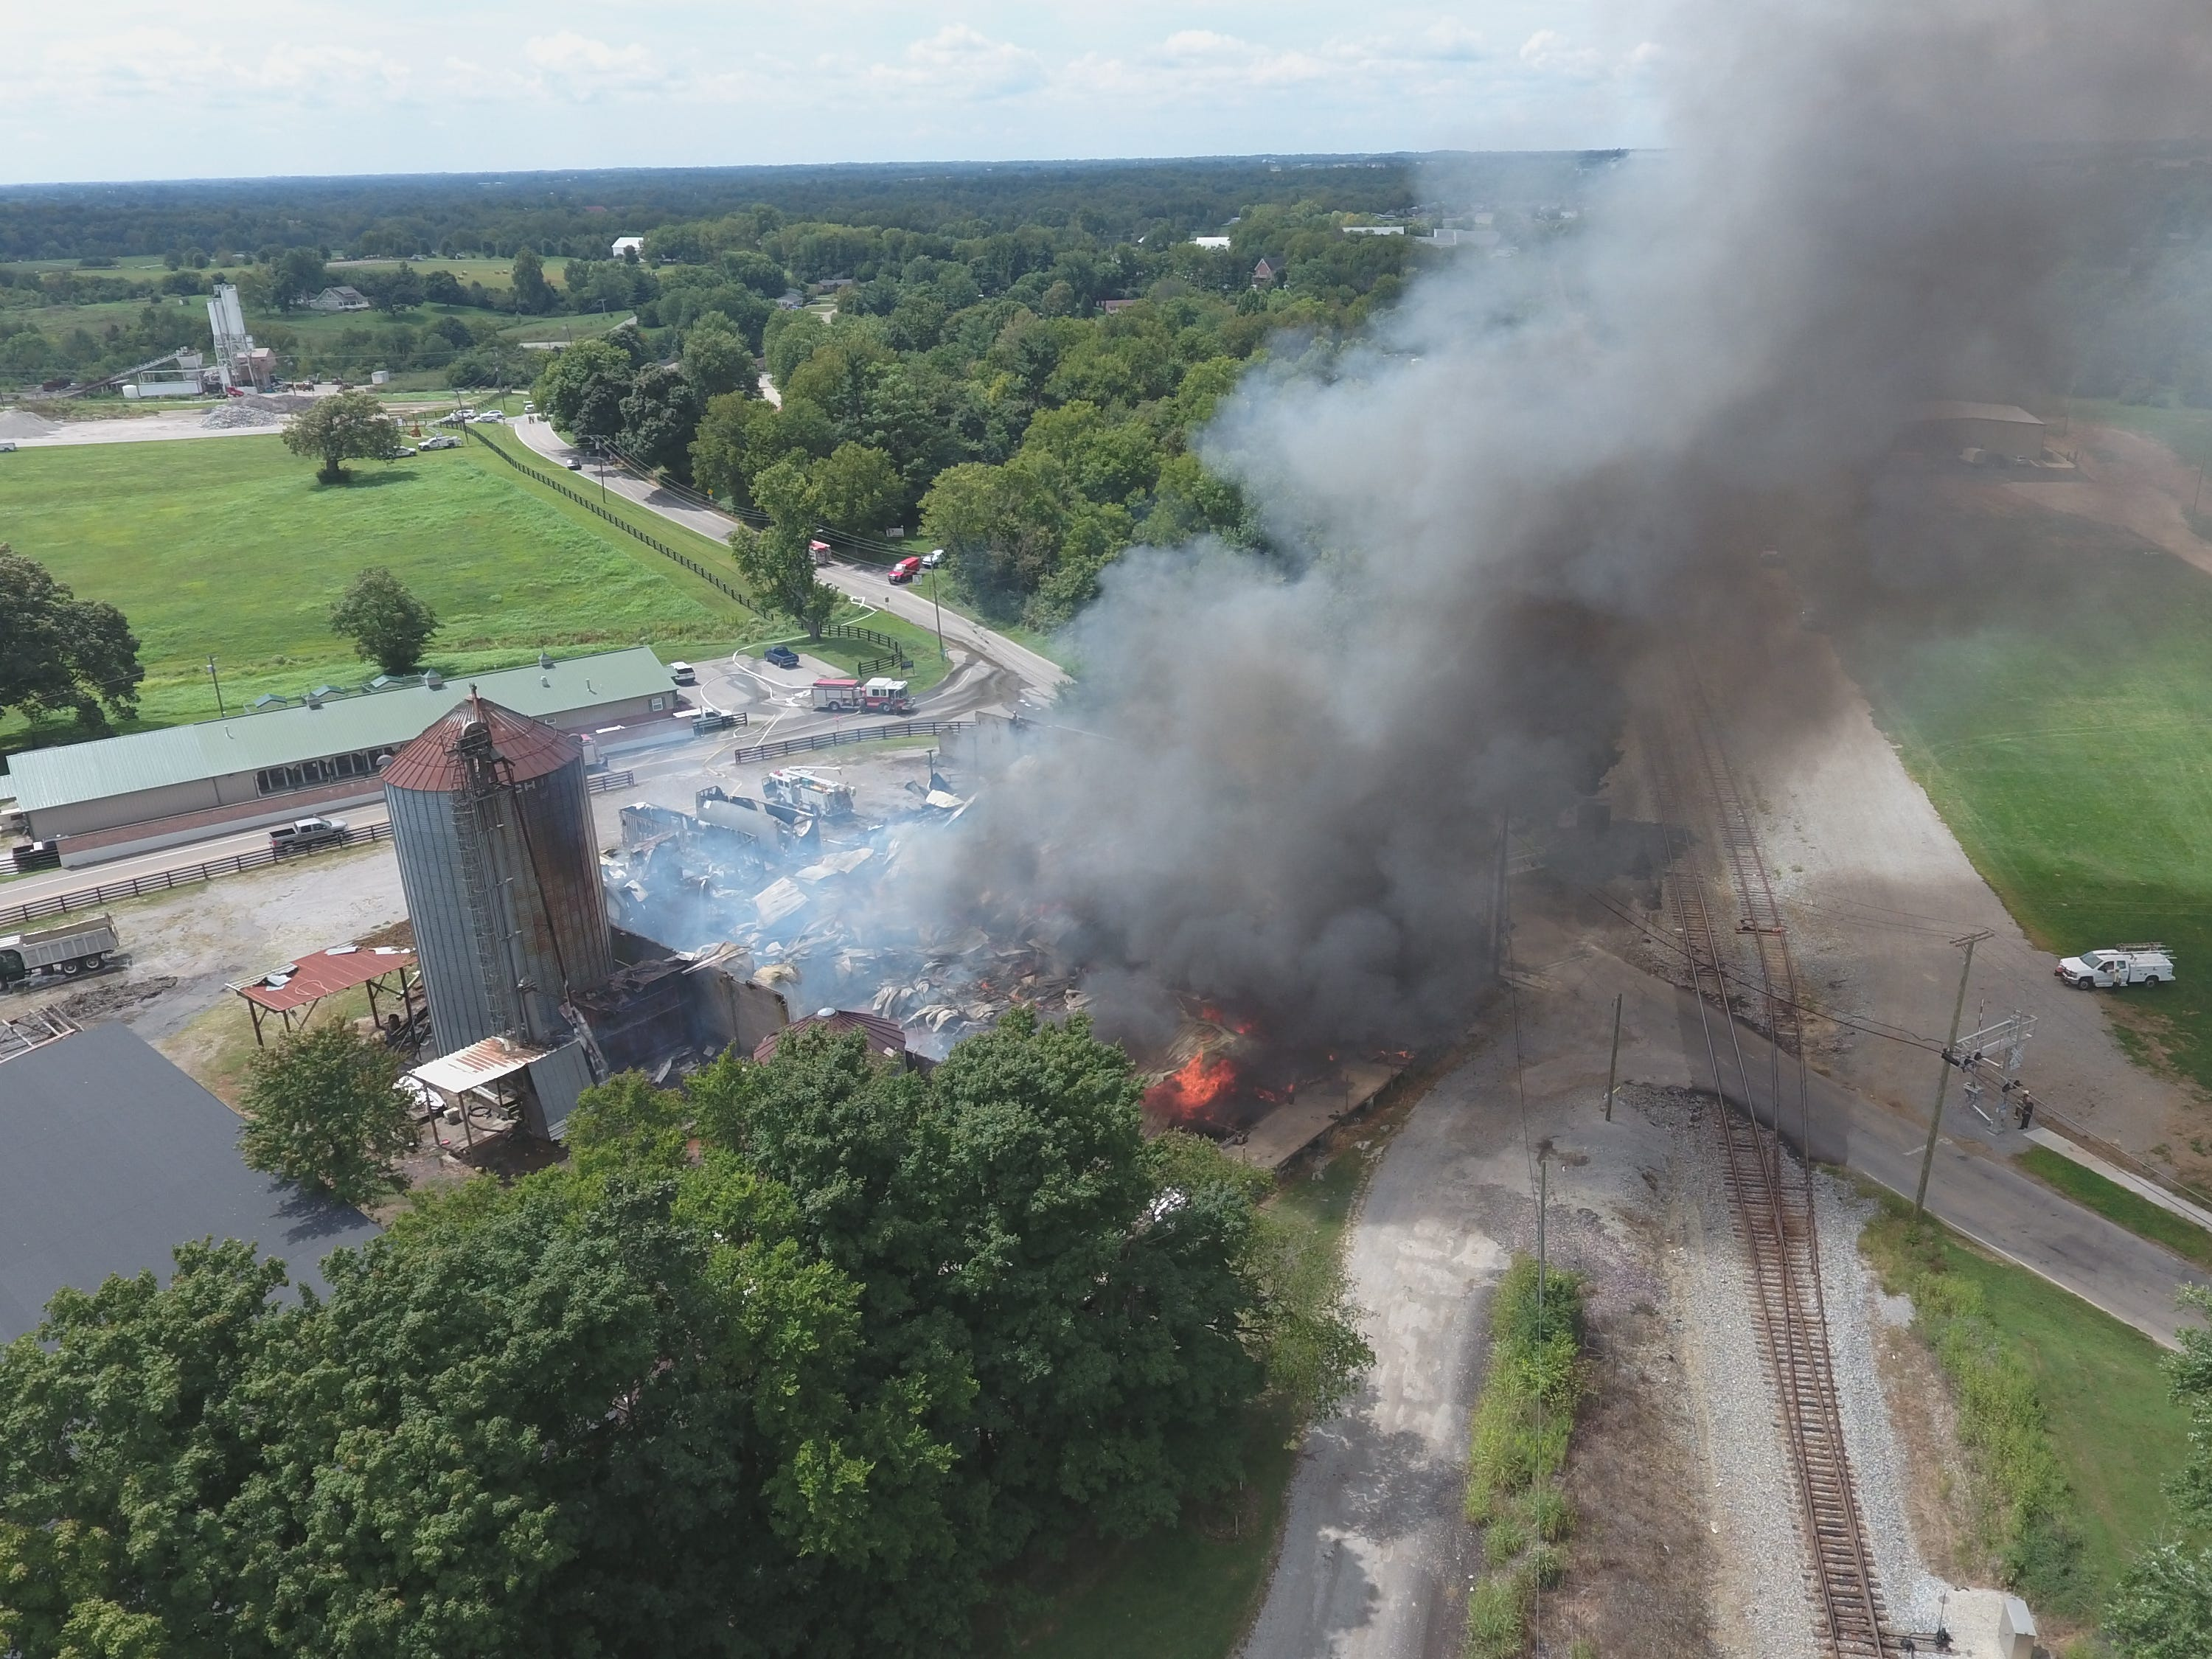 Drone footage by Timothy Babb captures the damage to the vacant former Tapp's Feed Store in Shelbyville.